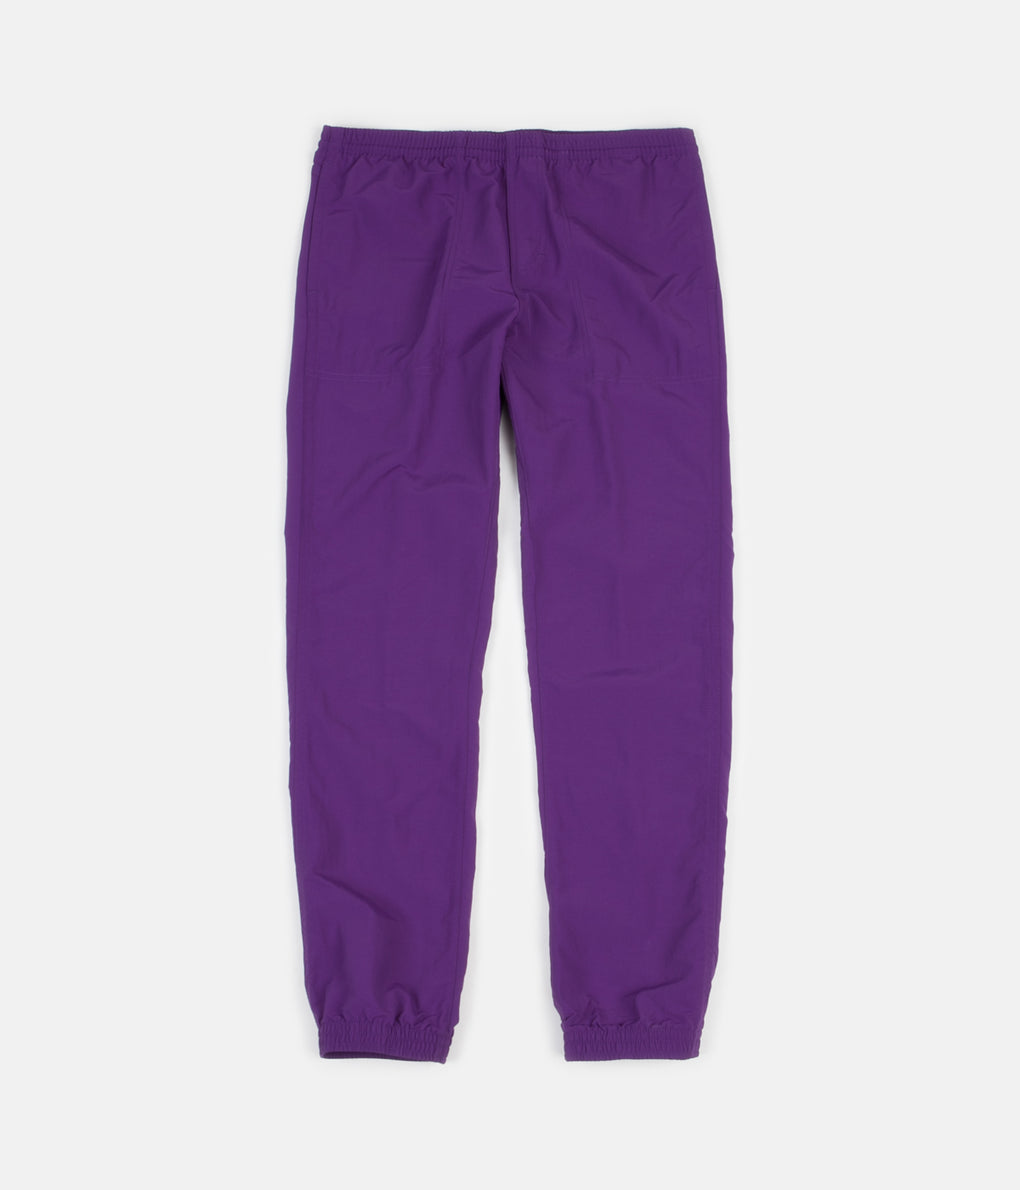 Patagonia Baggies Pants - Purple